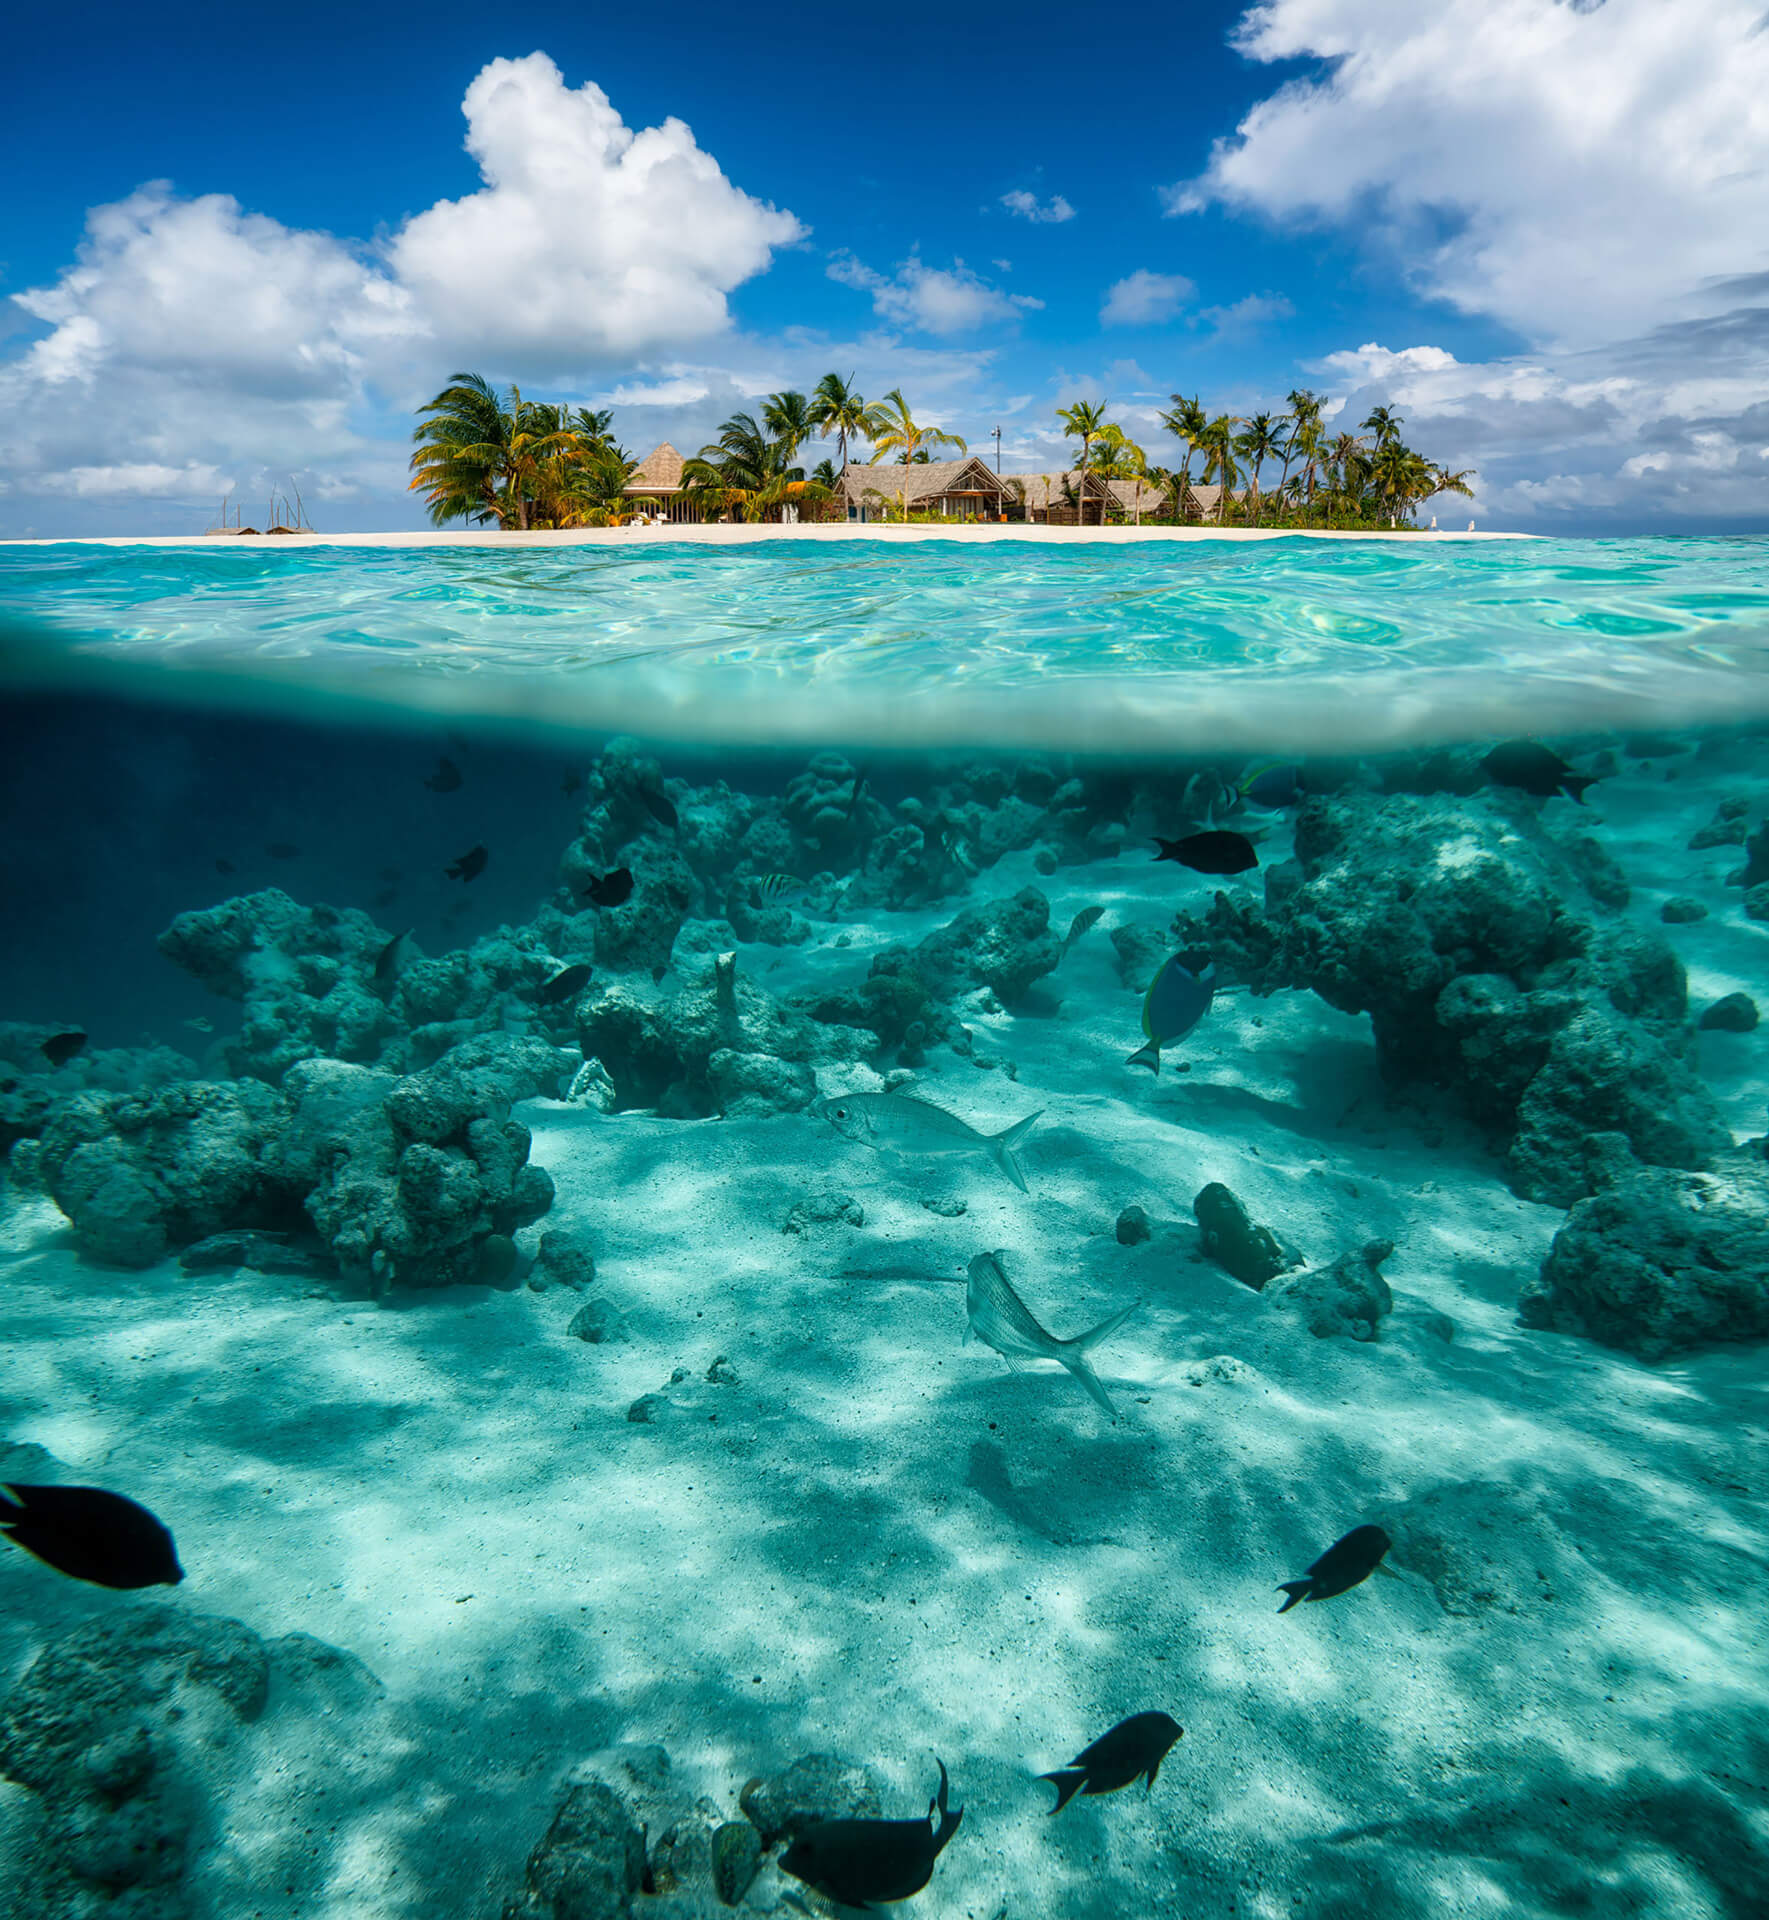 Island Resort: Maldives Tour Packages, 5 Days Tour To Maldives With